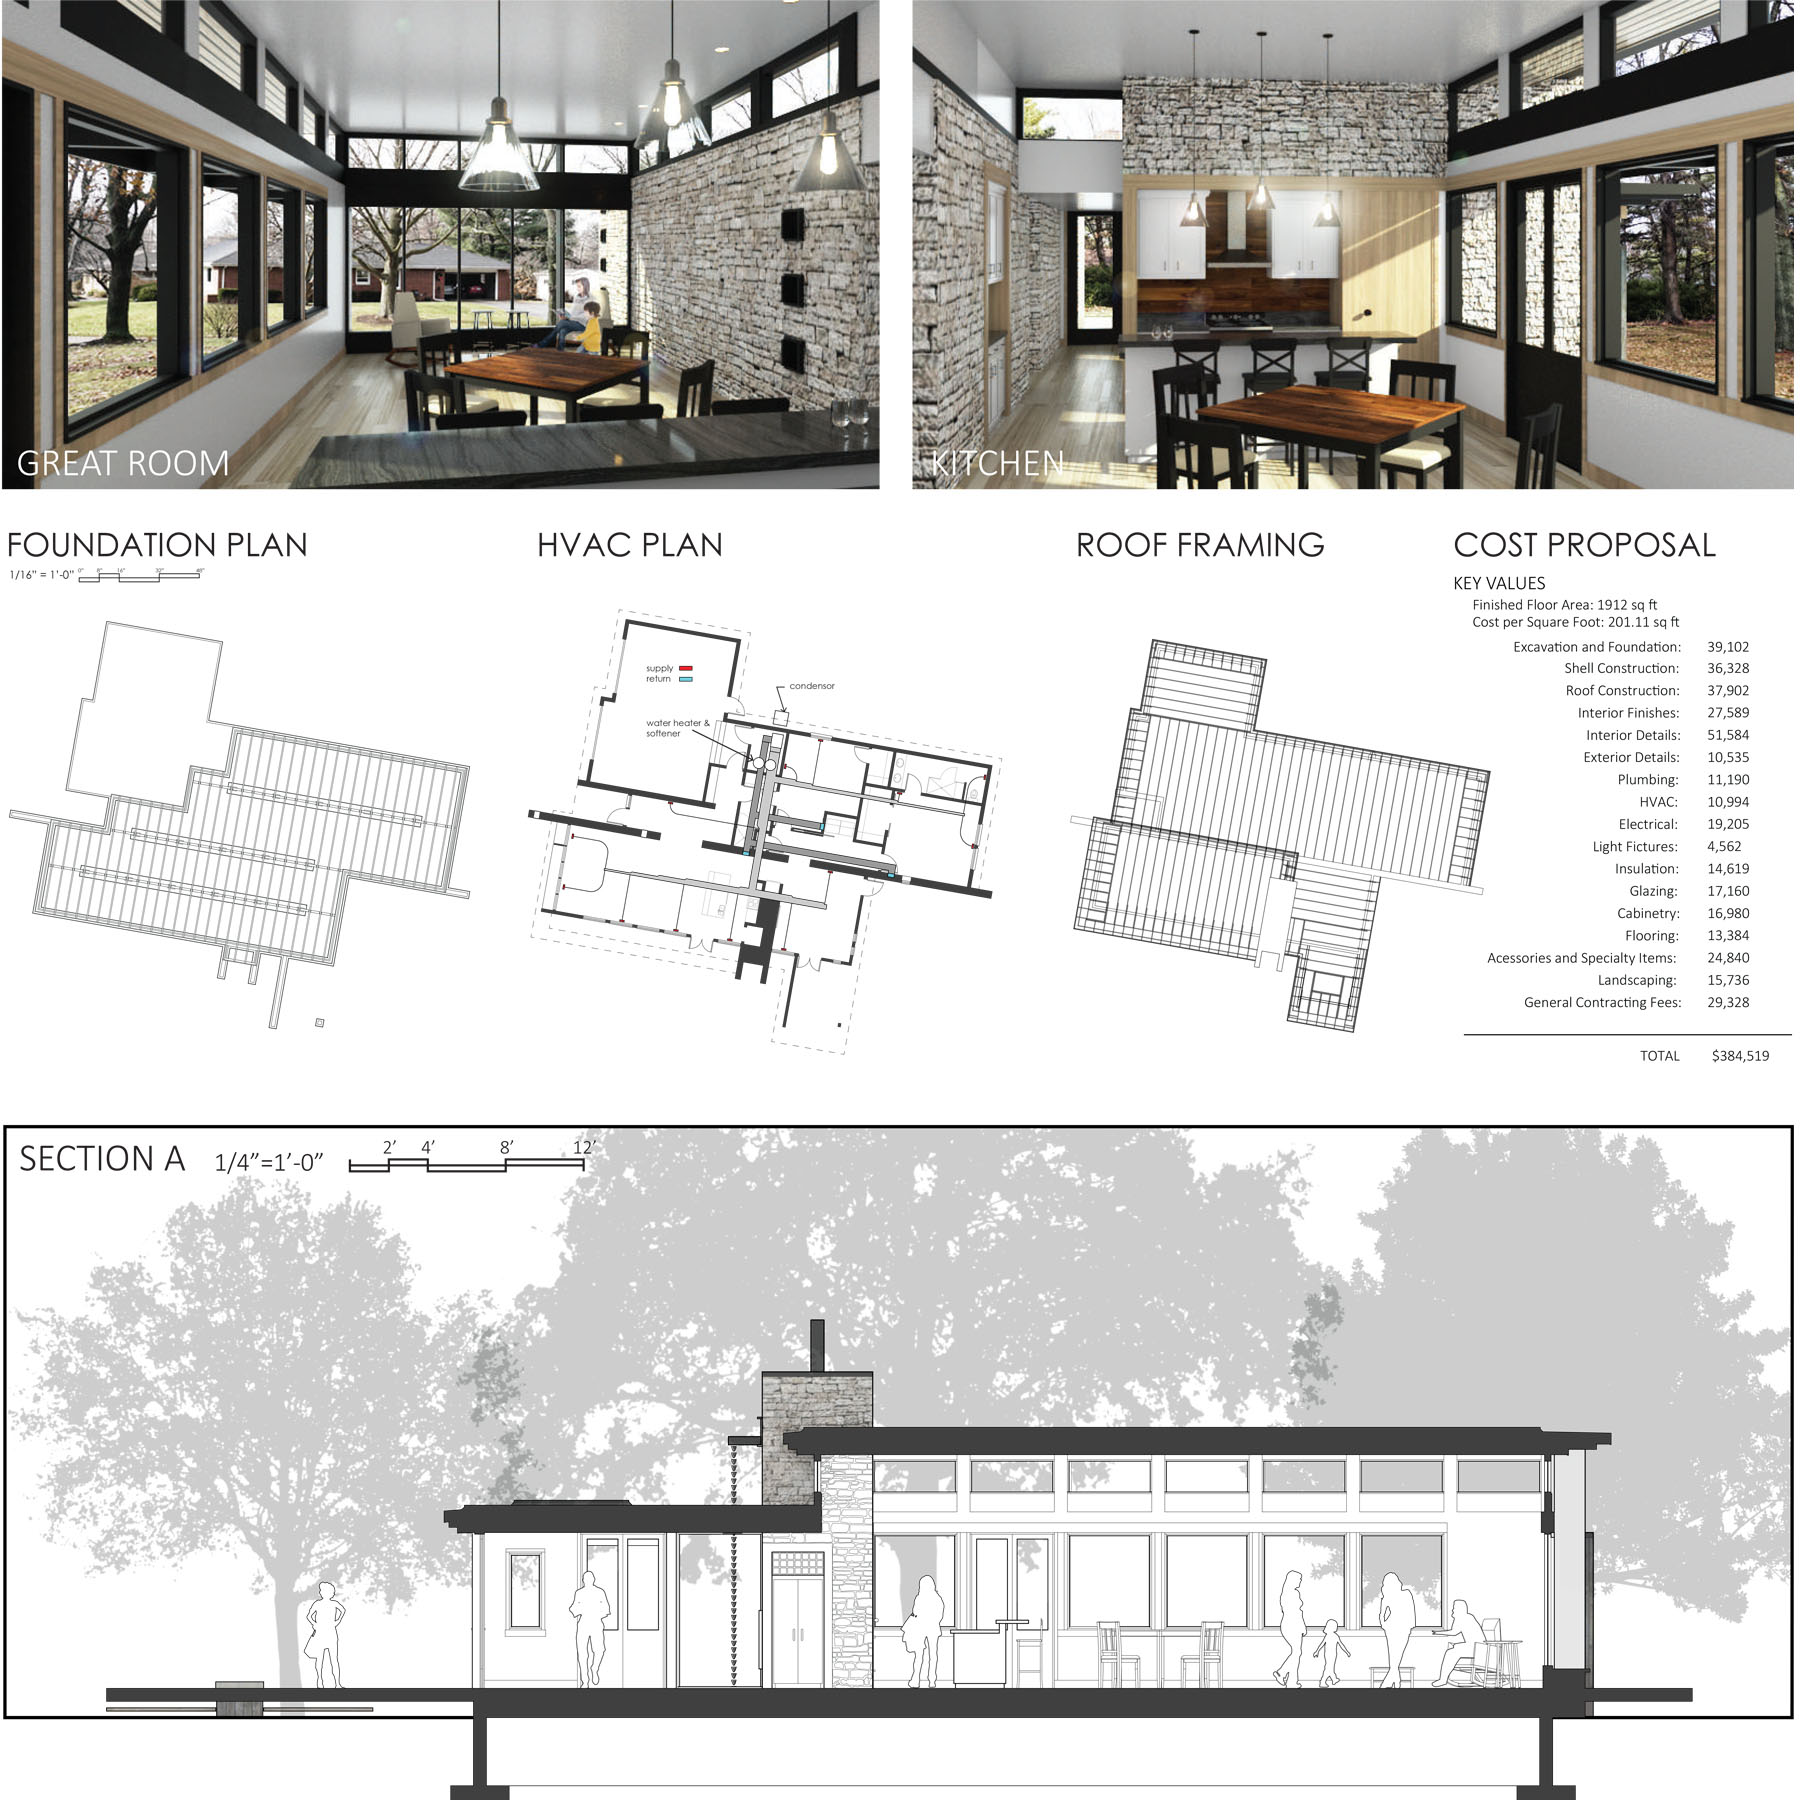 Interior renderings with stone walls, plans, and cross section of house